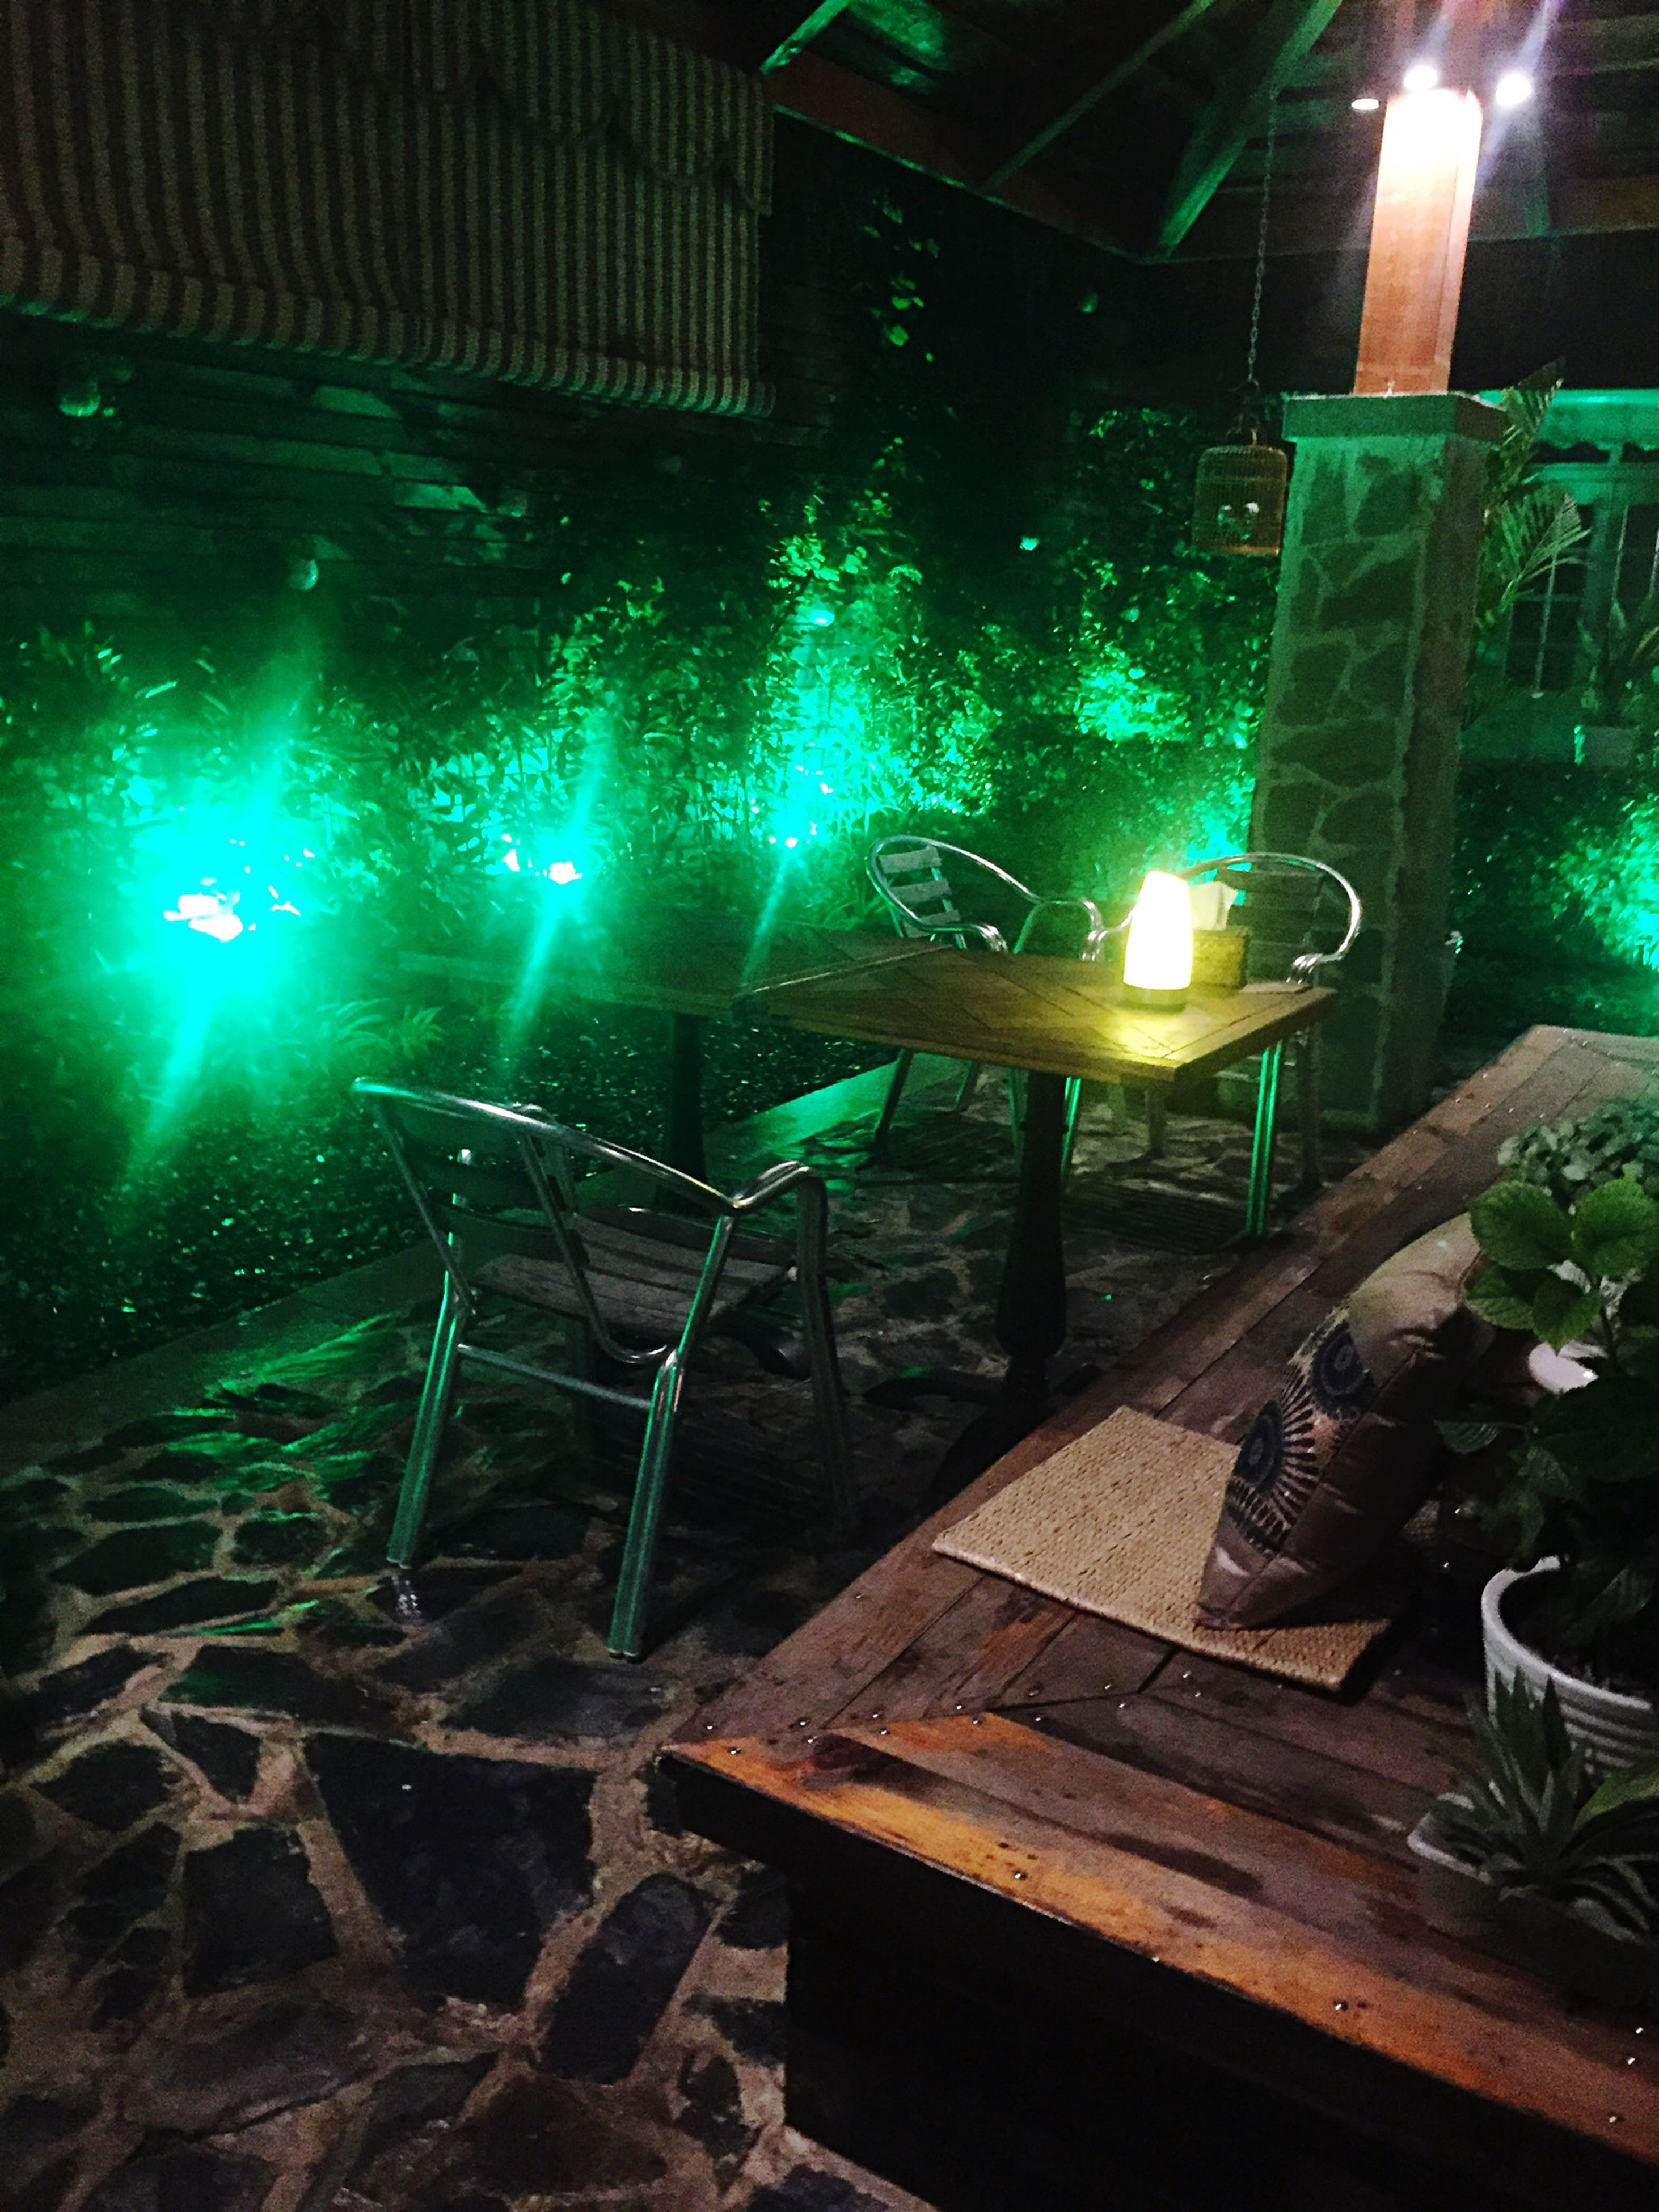 illuminated, night, lighting equipment, indoors, glowing, light - natural phenomenon, electric light, electricity, chair, electric lamp, no people, absence, table, lit, candle, hanging, wood - material, light, light beam, dark